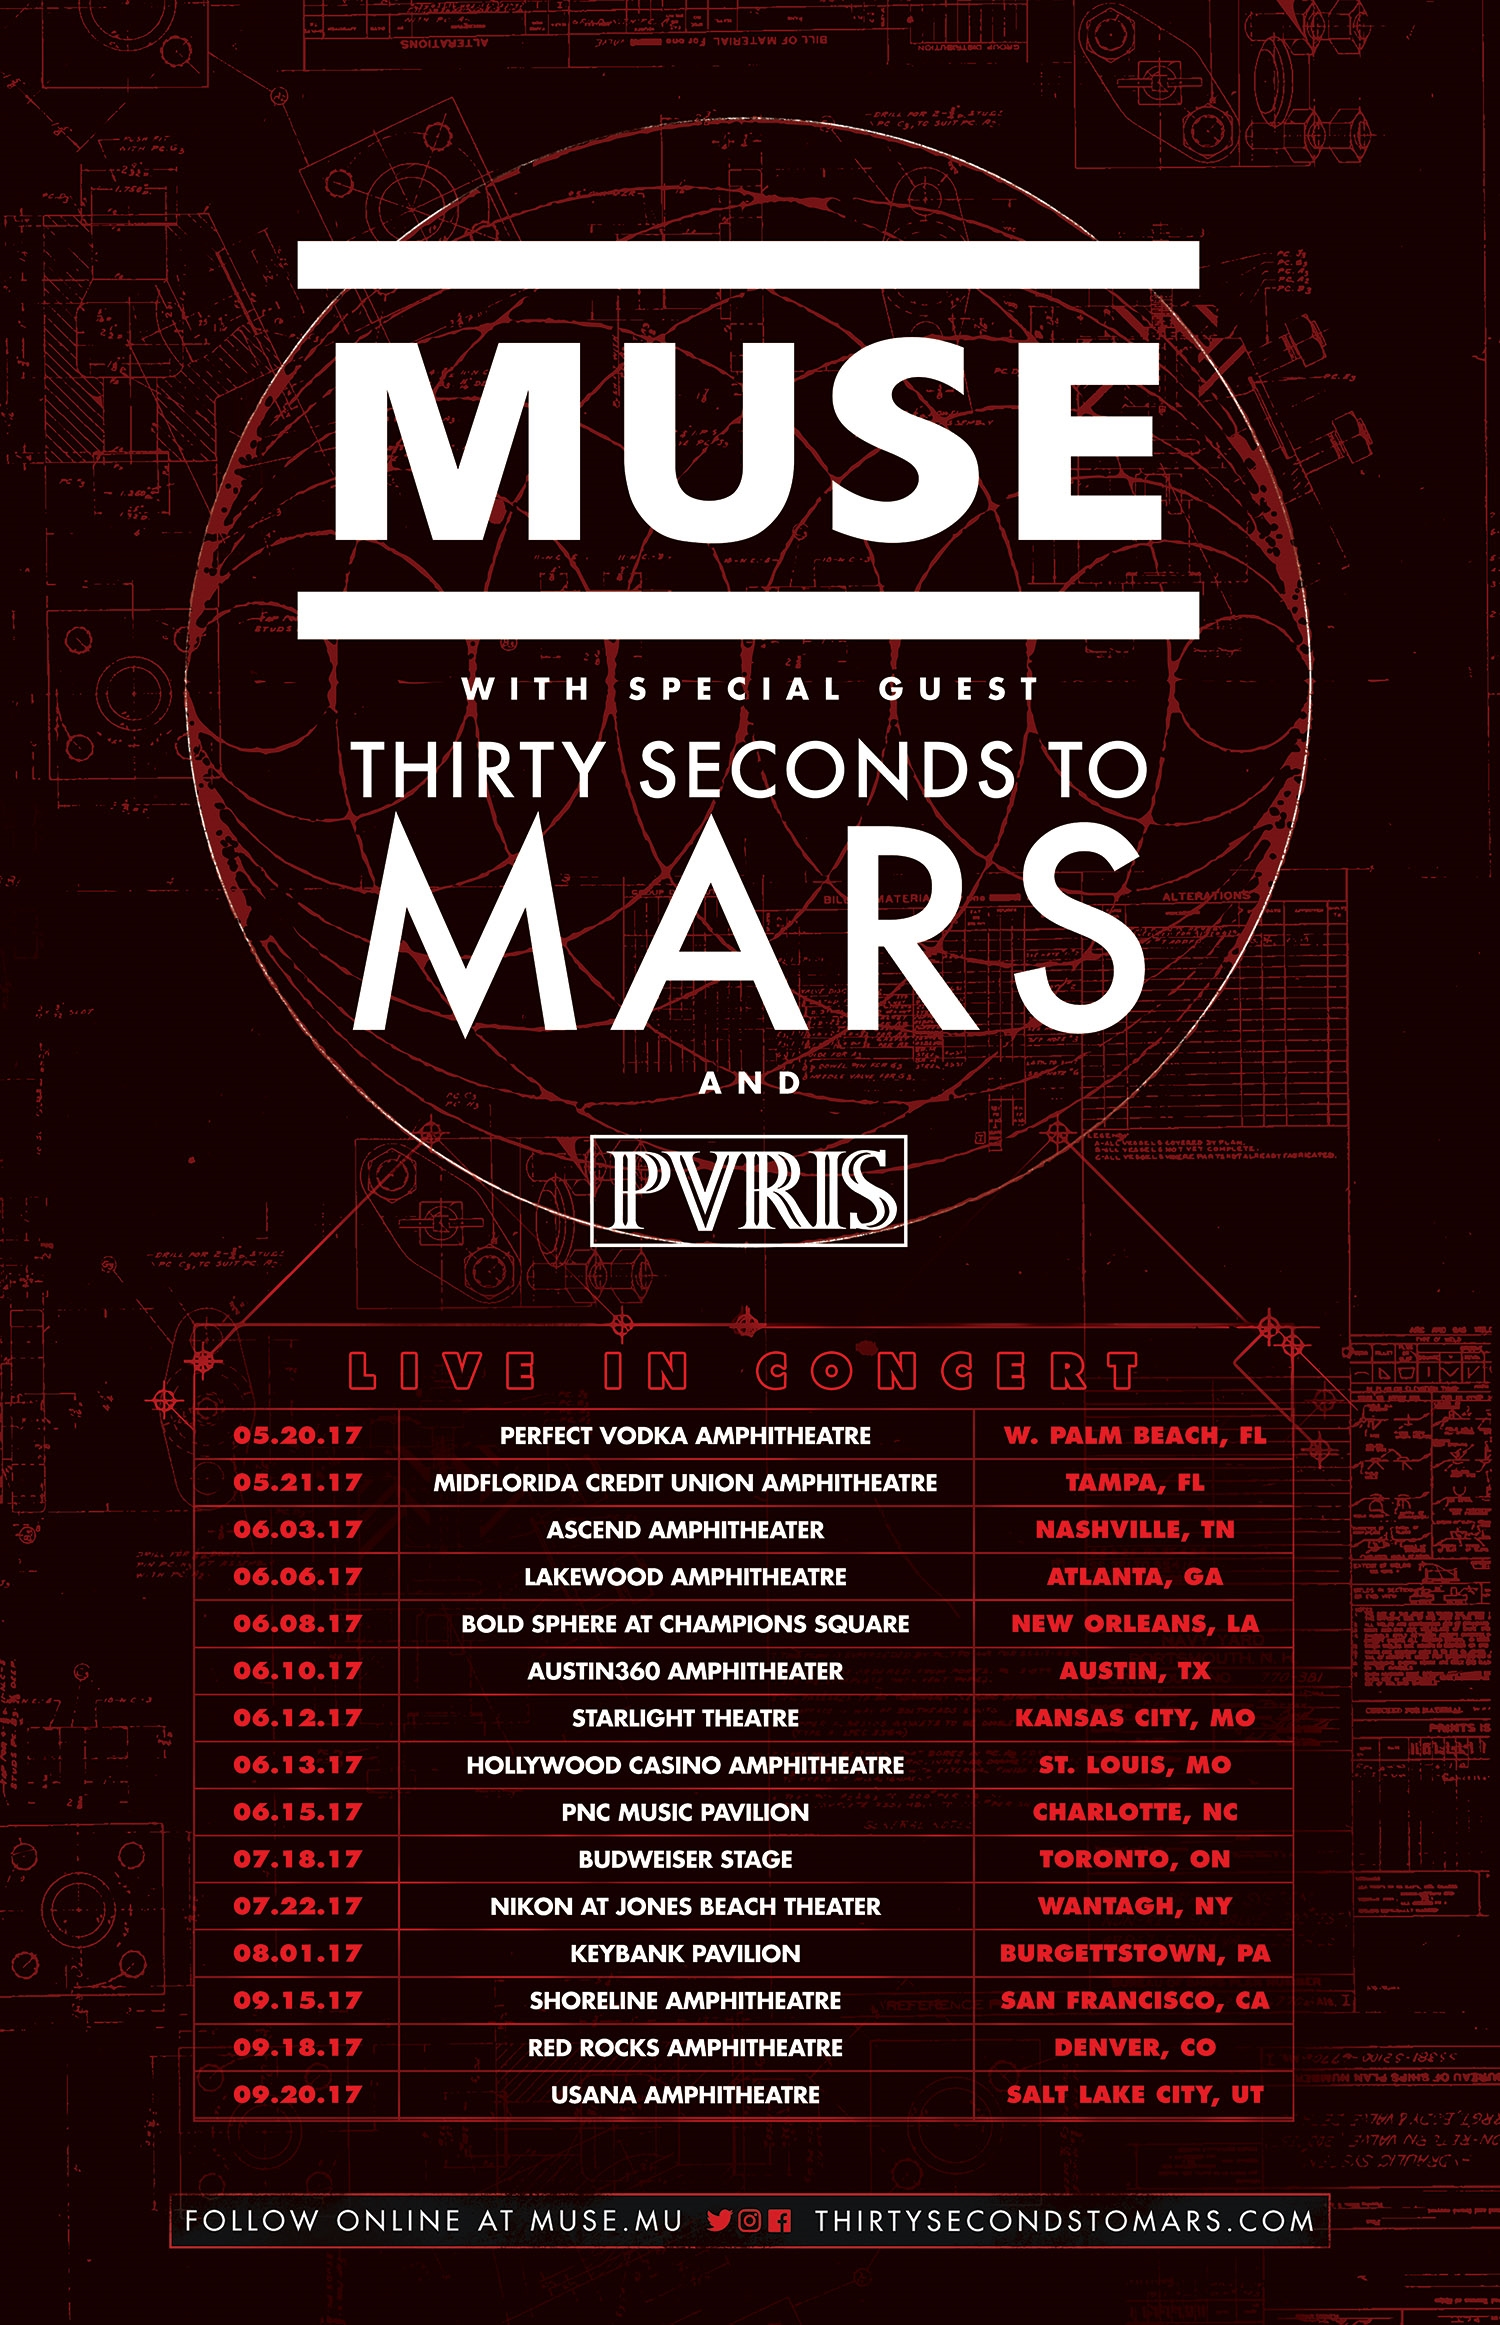 Tour Announcement Muse 30 Seconds To Mars Pvris Concert Crap